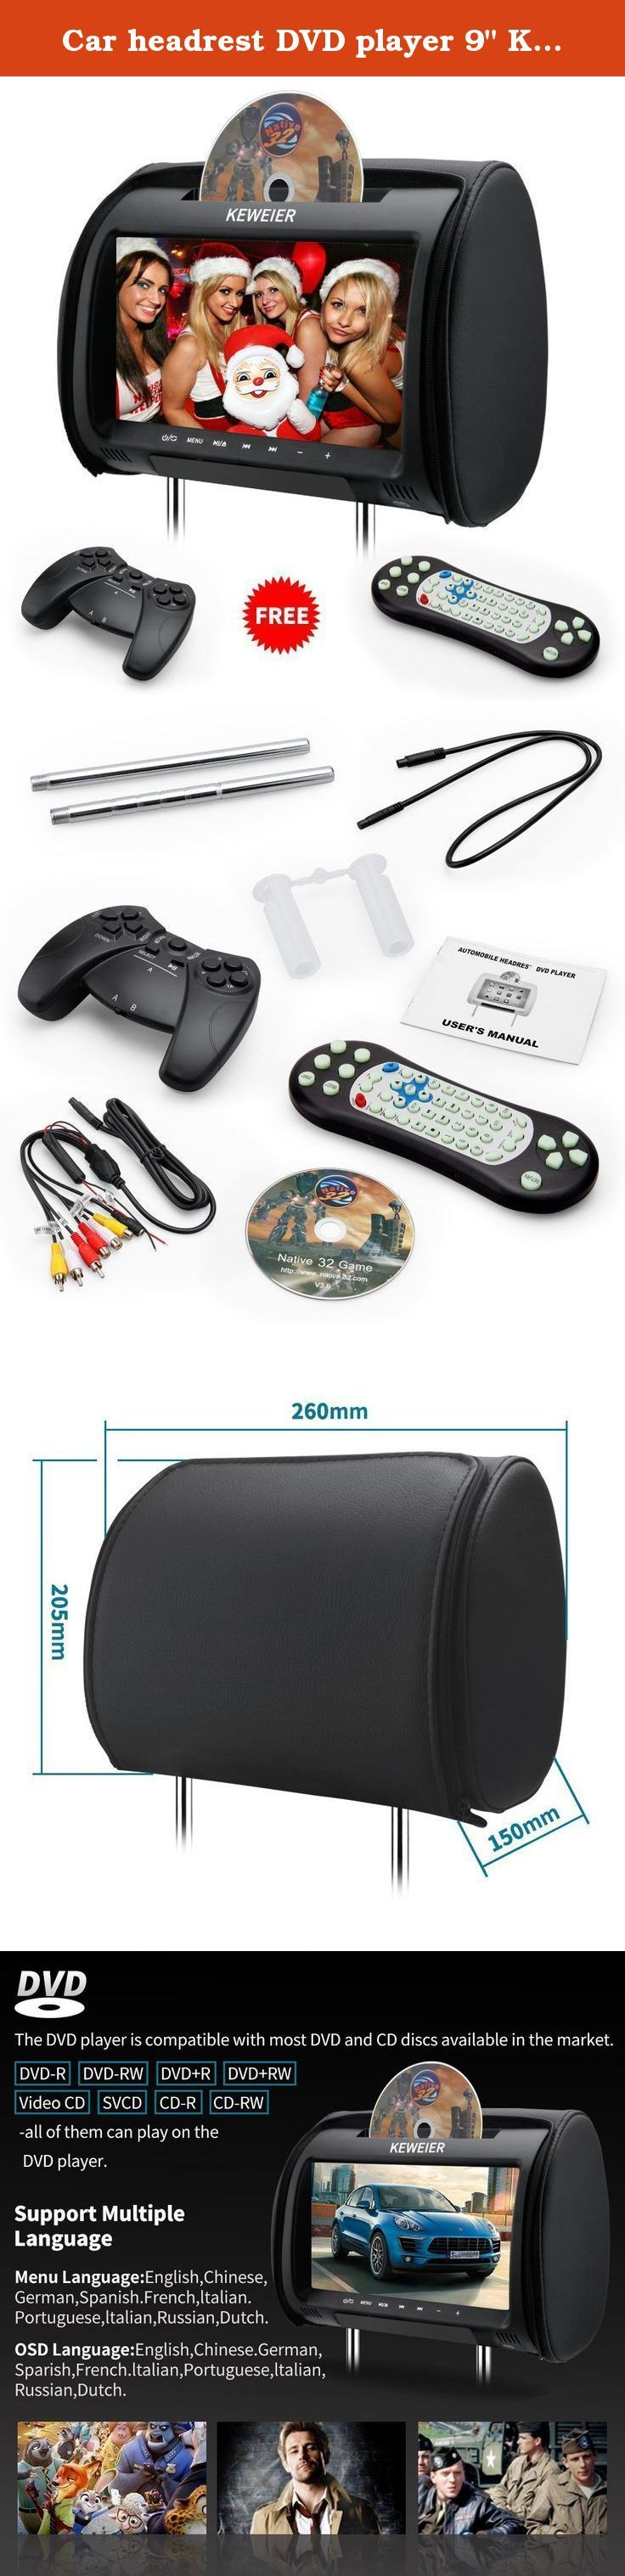 """Car headrest DVD player 9"""" KEWEIER HD TFT Screen Portable car dvd player with FM Game Disc Mp3 wireless Game pad (DVD 1 PCS ). 1 PCS headrest dvd Features: Enjoy your favourite videos by the digital screen (resolution: 800*480) USB Port: Supports USB drive and MP3 player with the maximum capacity of 32GB SD Card Slot: Supports SD & SDHC card with the maximum file limitation of 4GB *able to read 32GB SDHC card Compatible Format :(both USB&SD) DIVX/MPEG/DAT/MOV/VCD/XVID/MP3/WMA/JPEG..."""